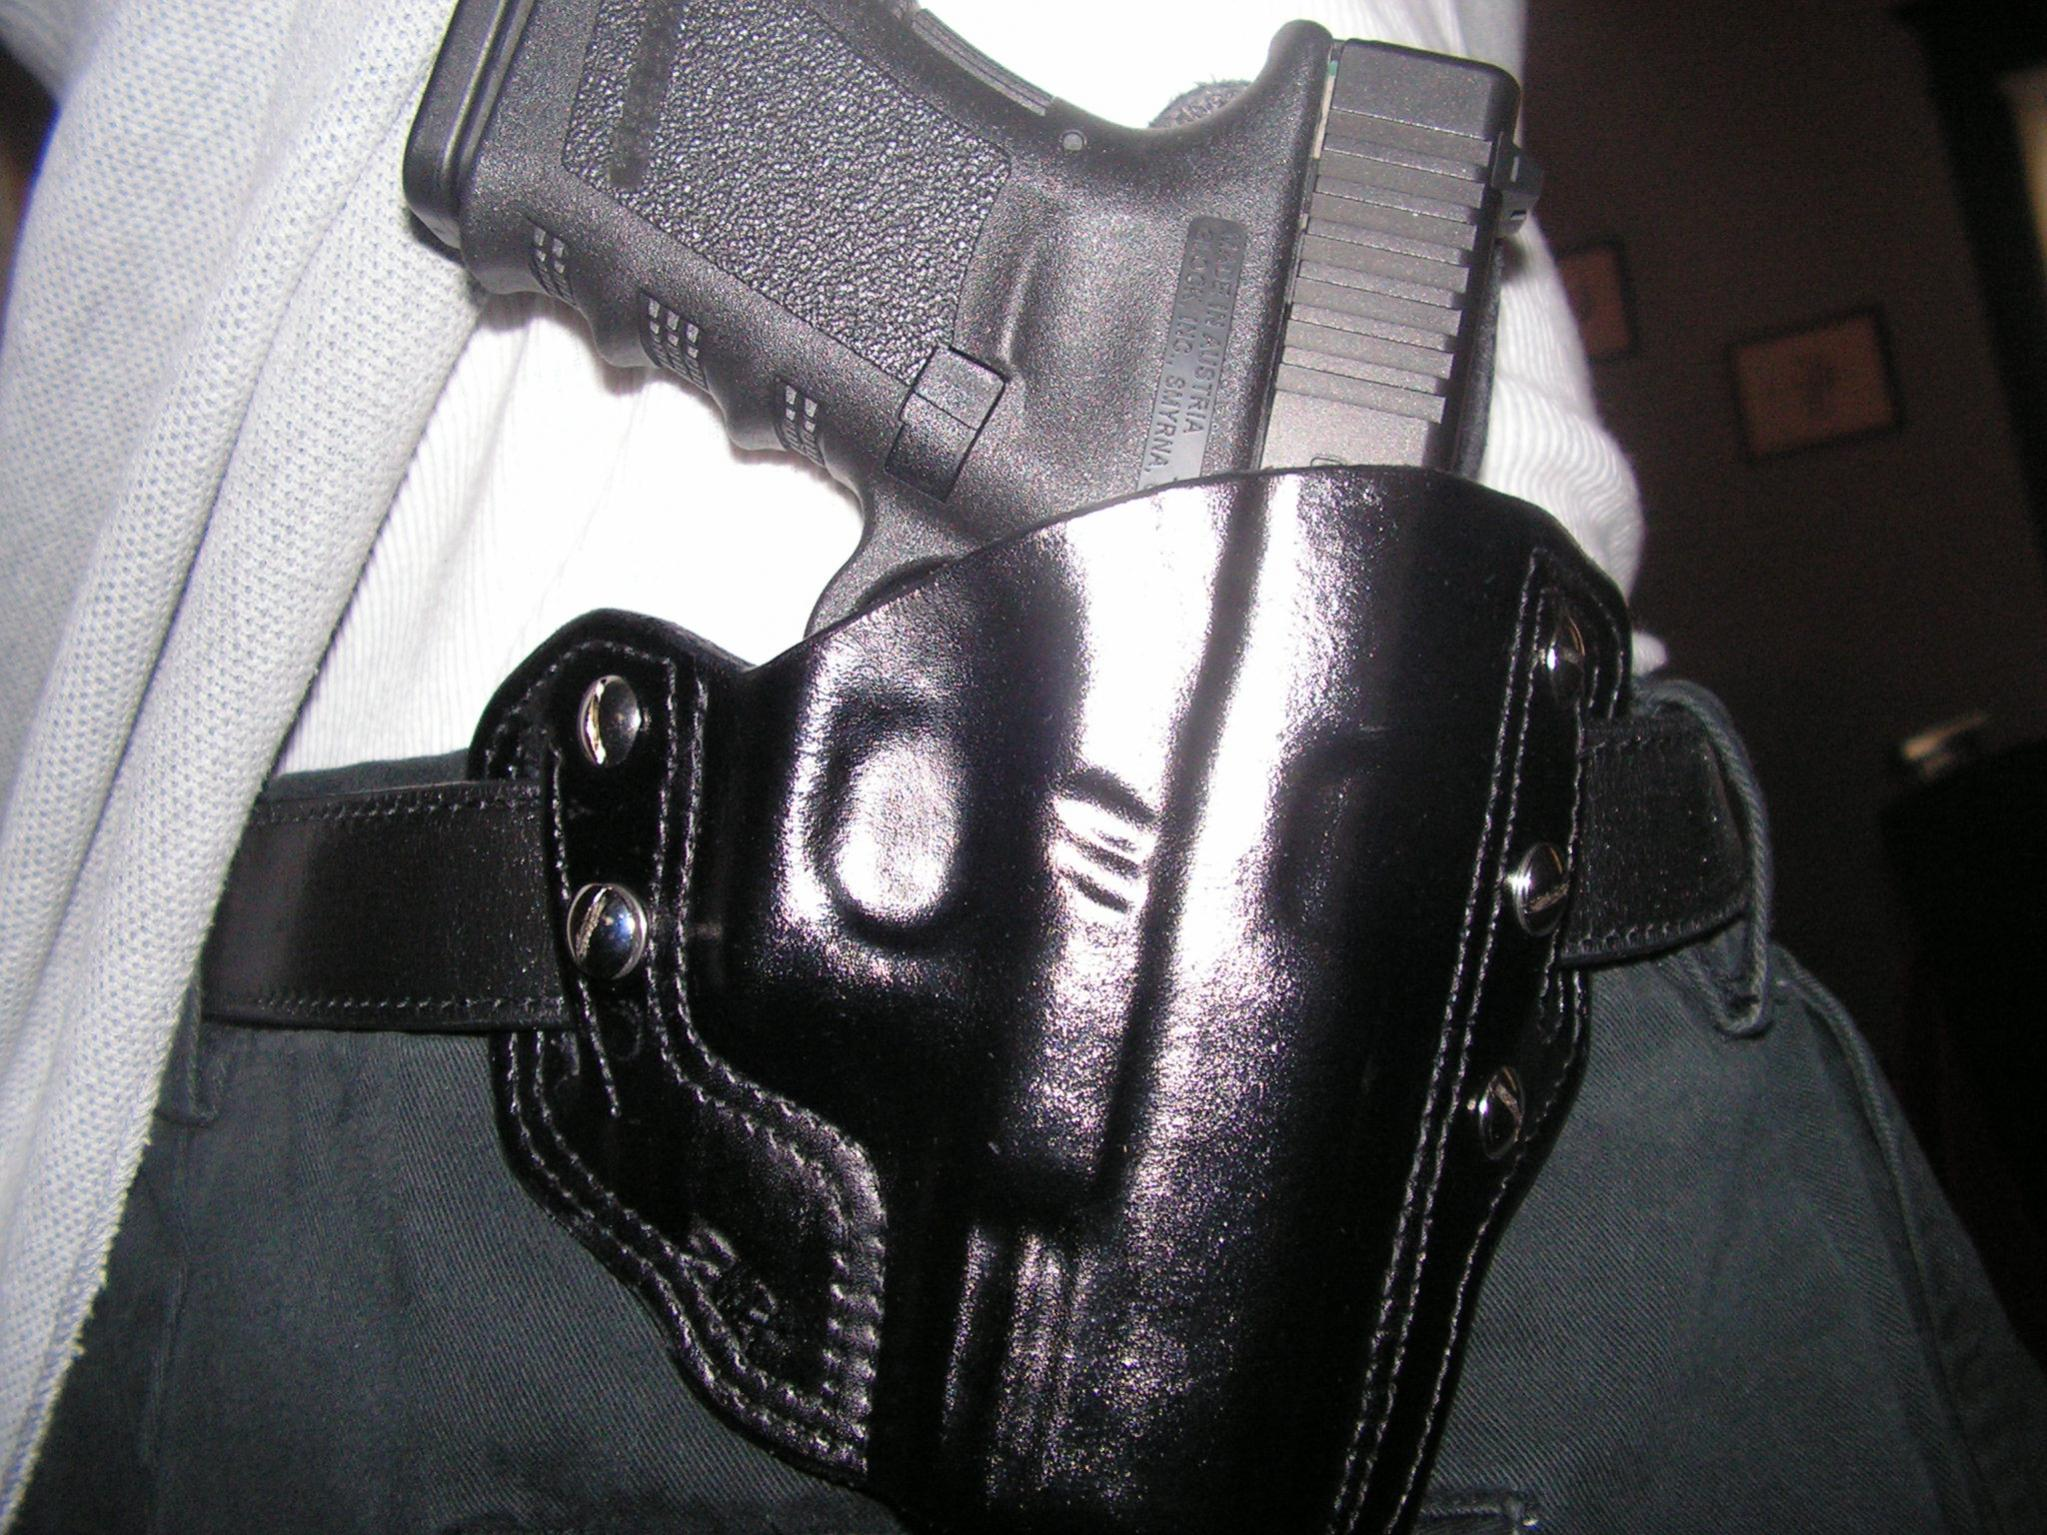 G19 Holster Rig setup pics wanted-pict0118.jpg